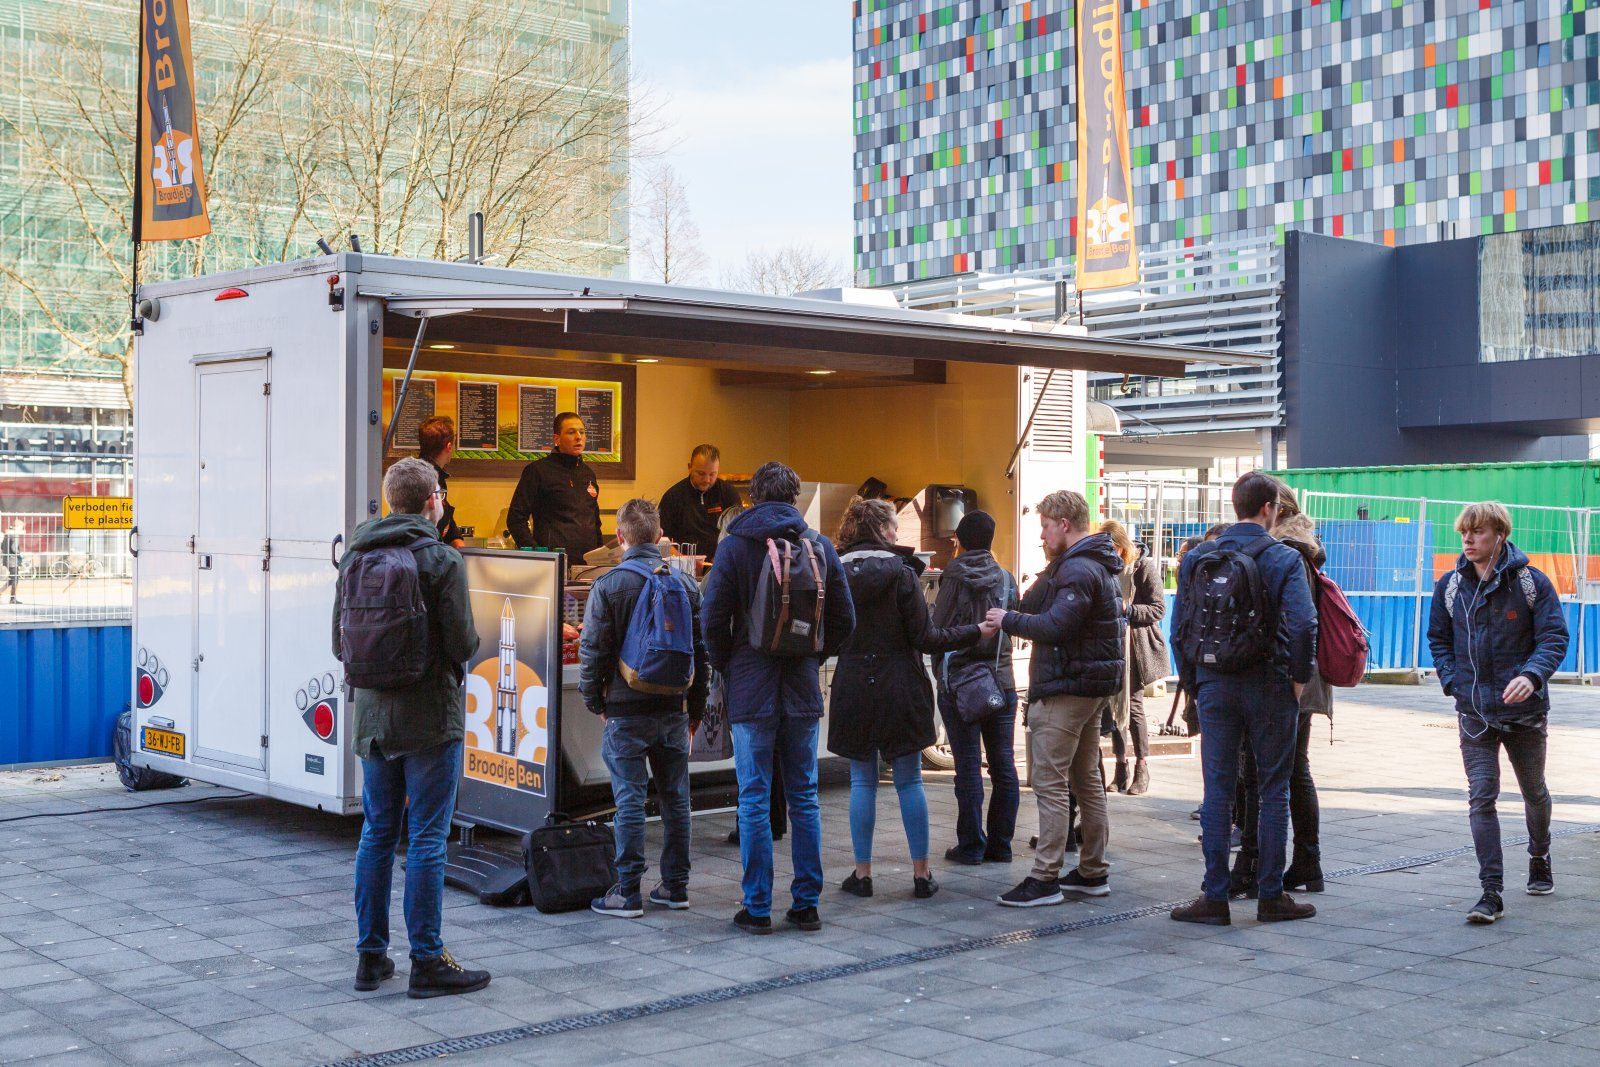 Foodtruck Broodje Ben